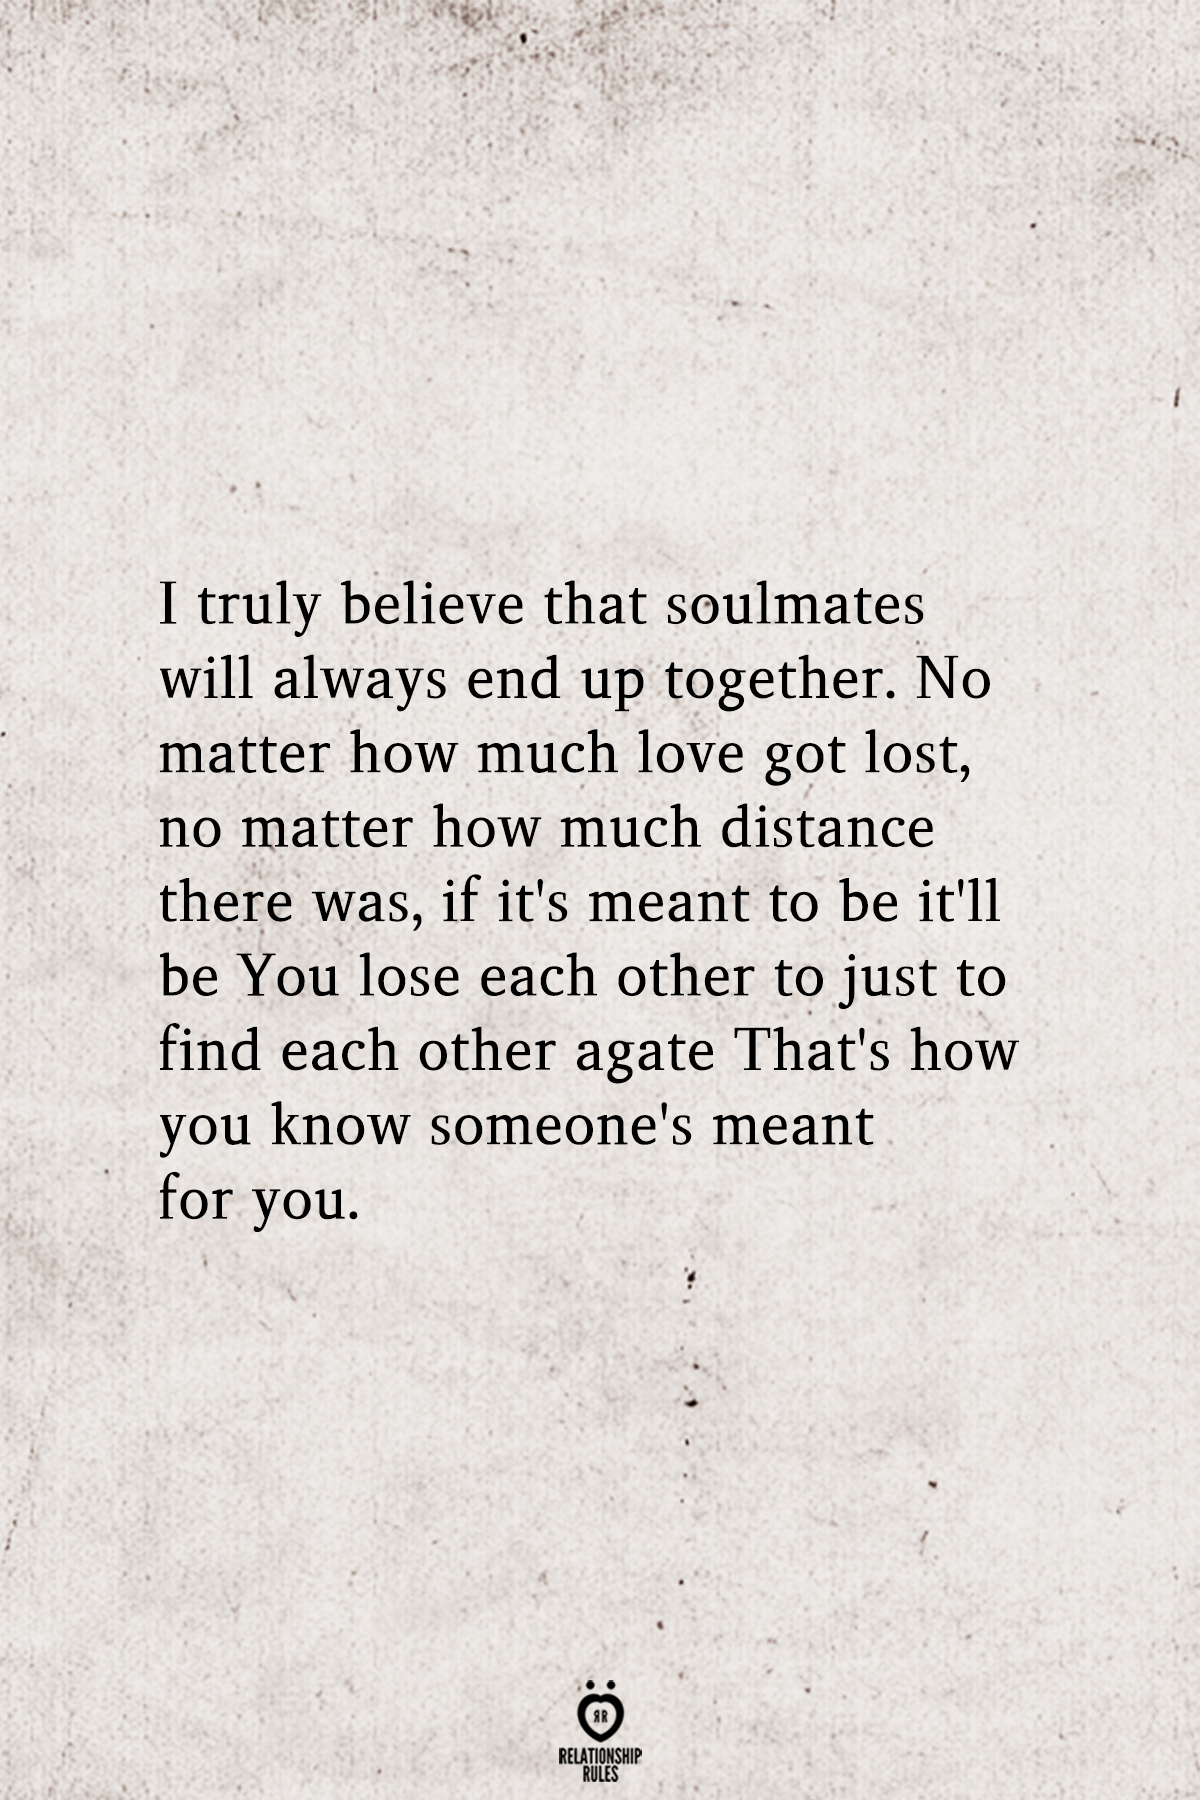 I truly believe that soulmates will always end up together.